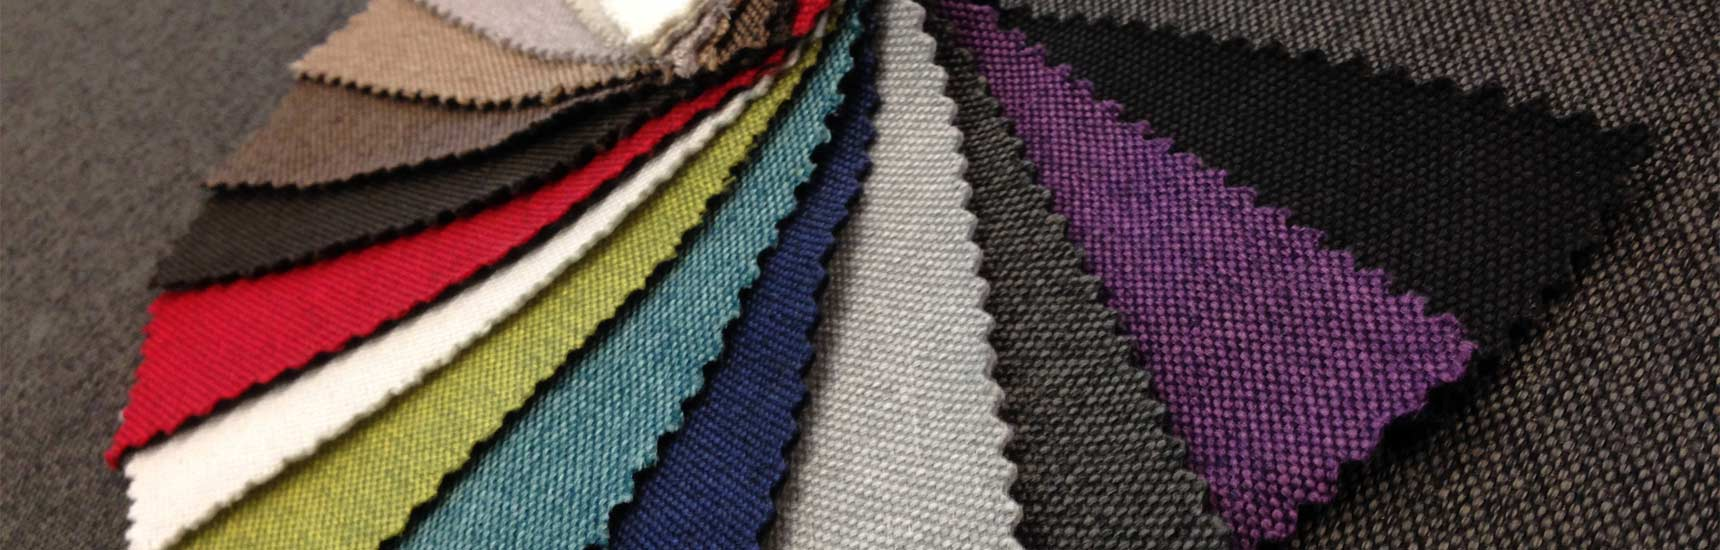 Fabric swatches for campervan roll bed